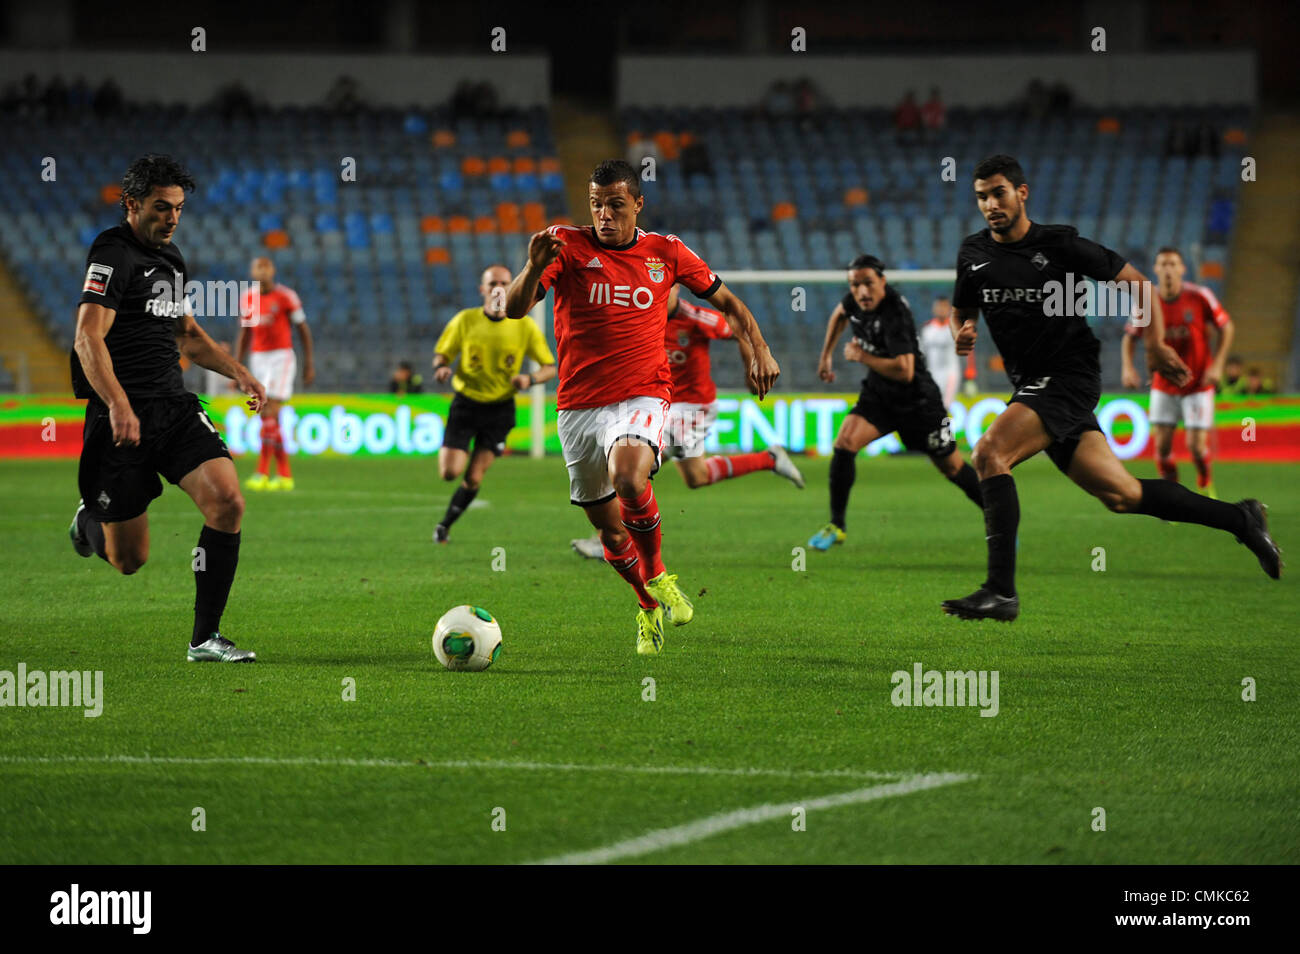 Benfica's Brazillian striker Lima vies for the ball with Academica defenders during the portuguese Liga Sagres - Stock Image